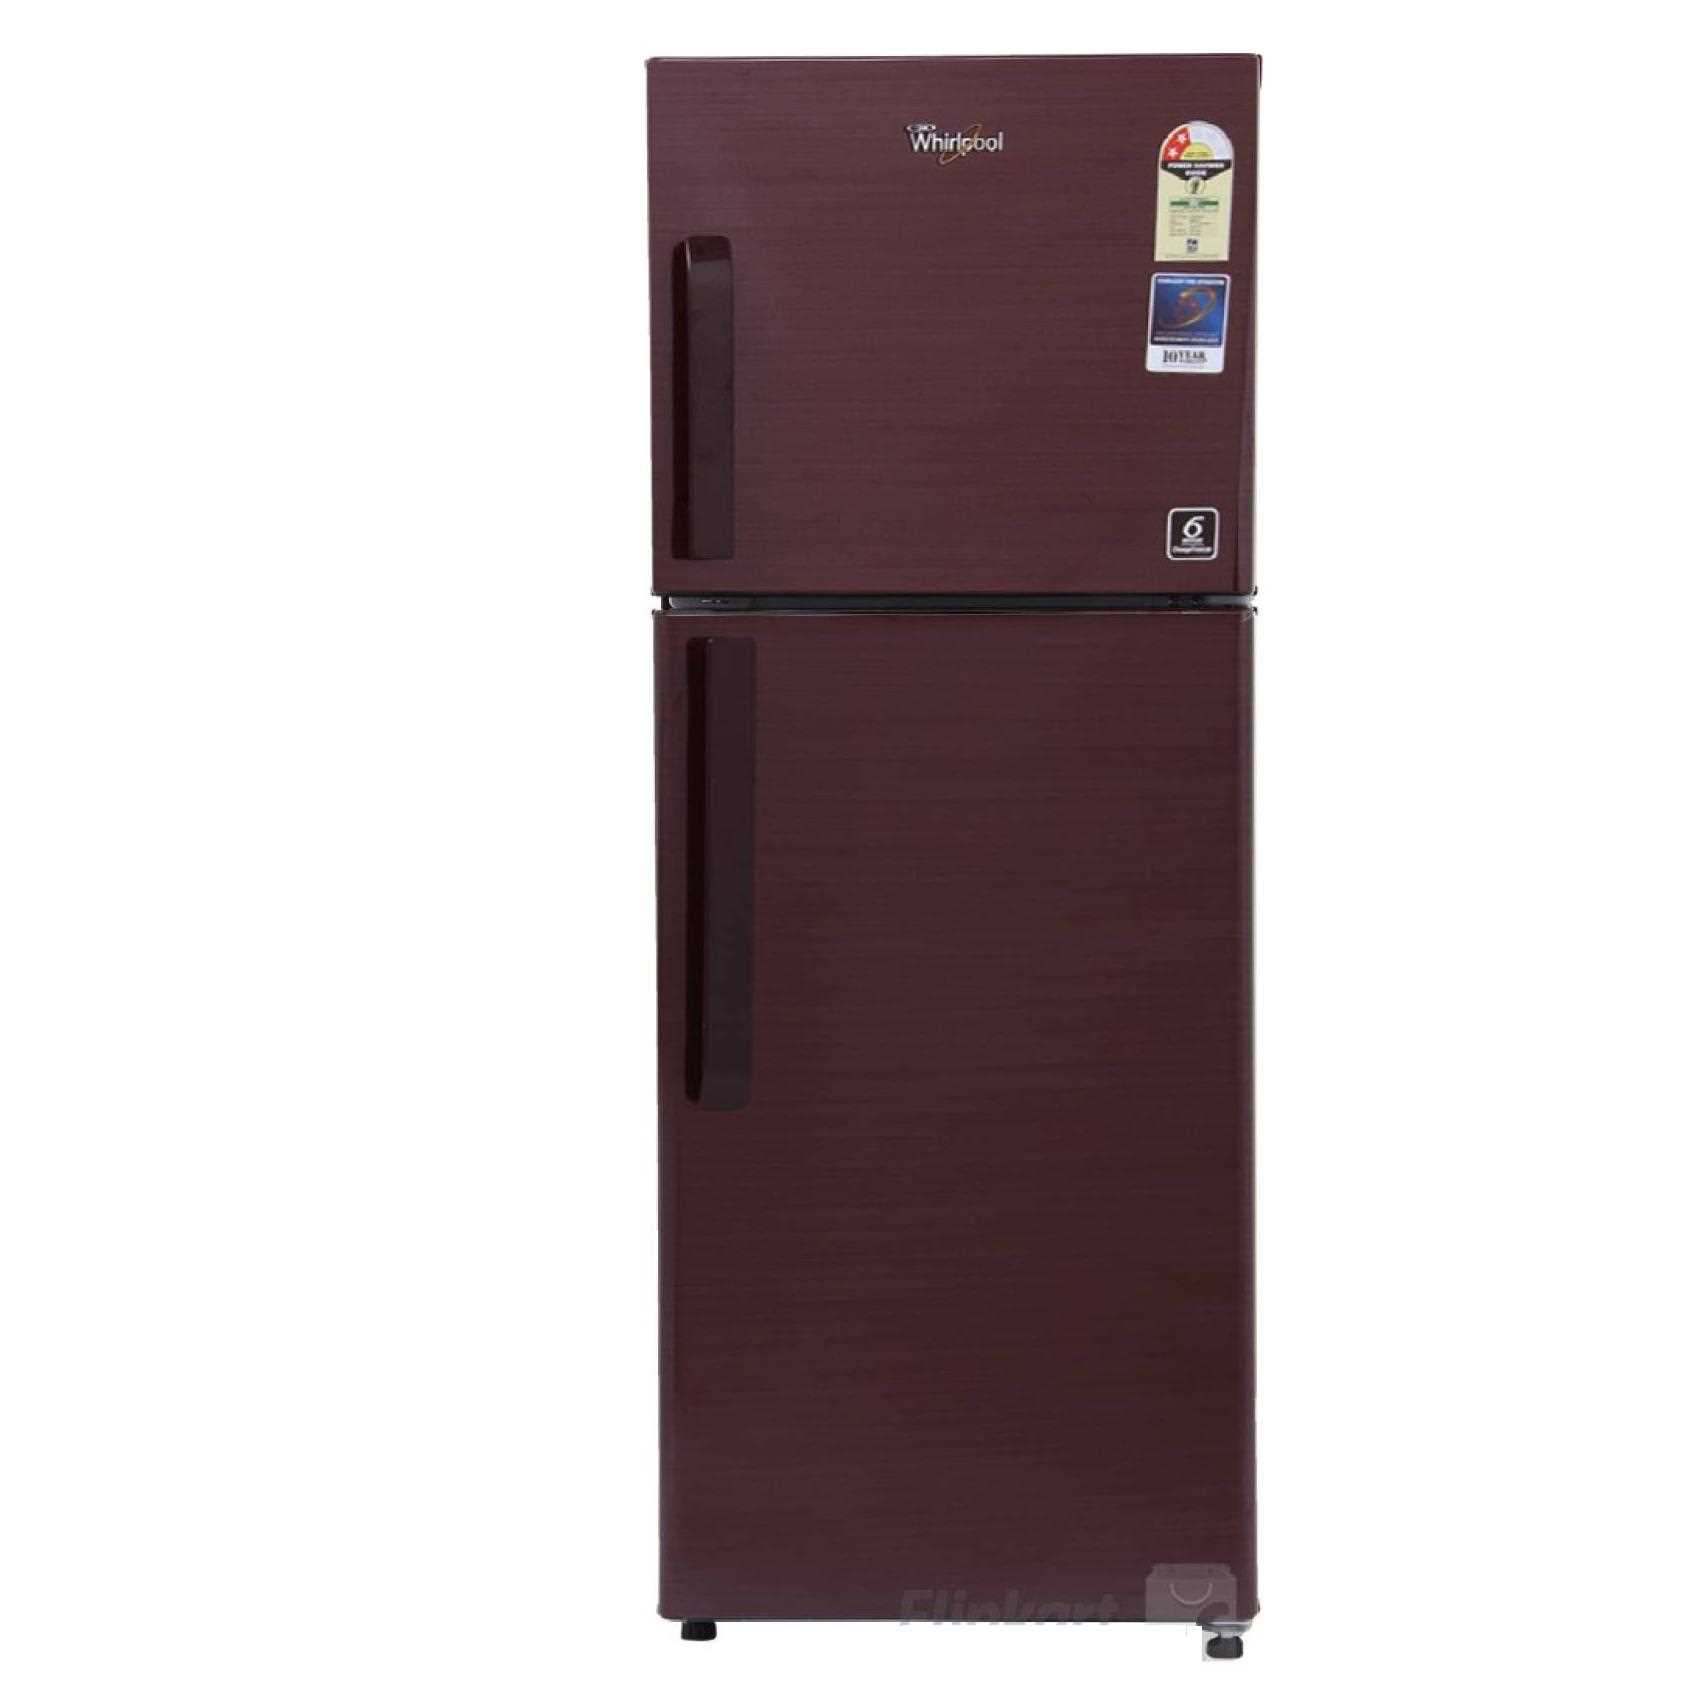 Double Door Refrigerator Price List In India Feb 2017